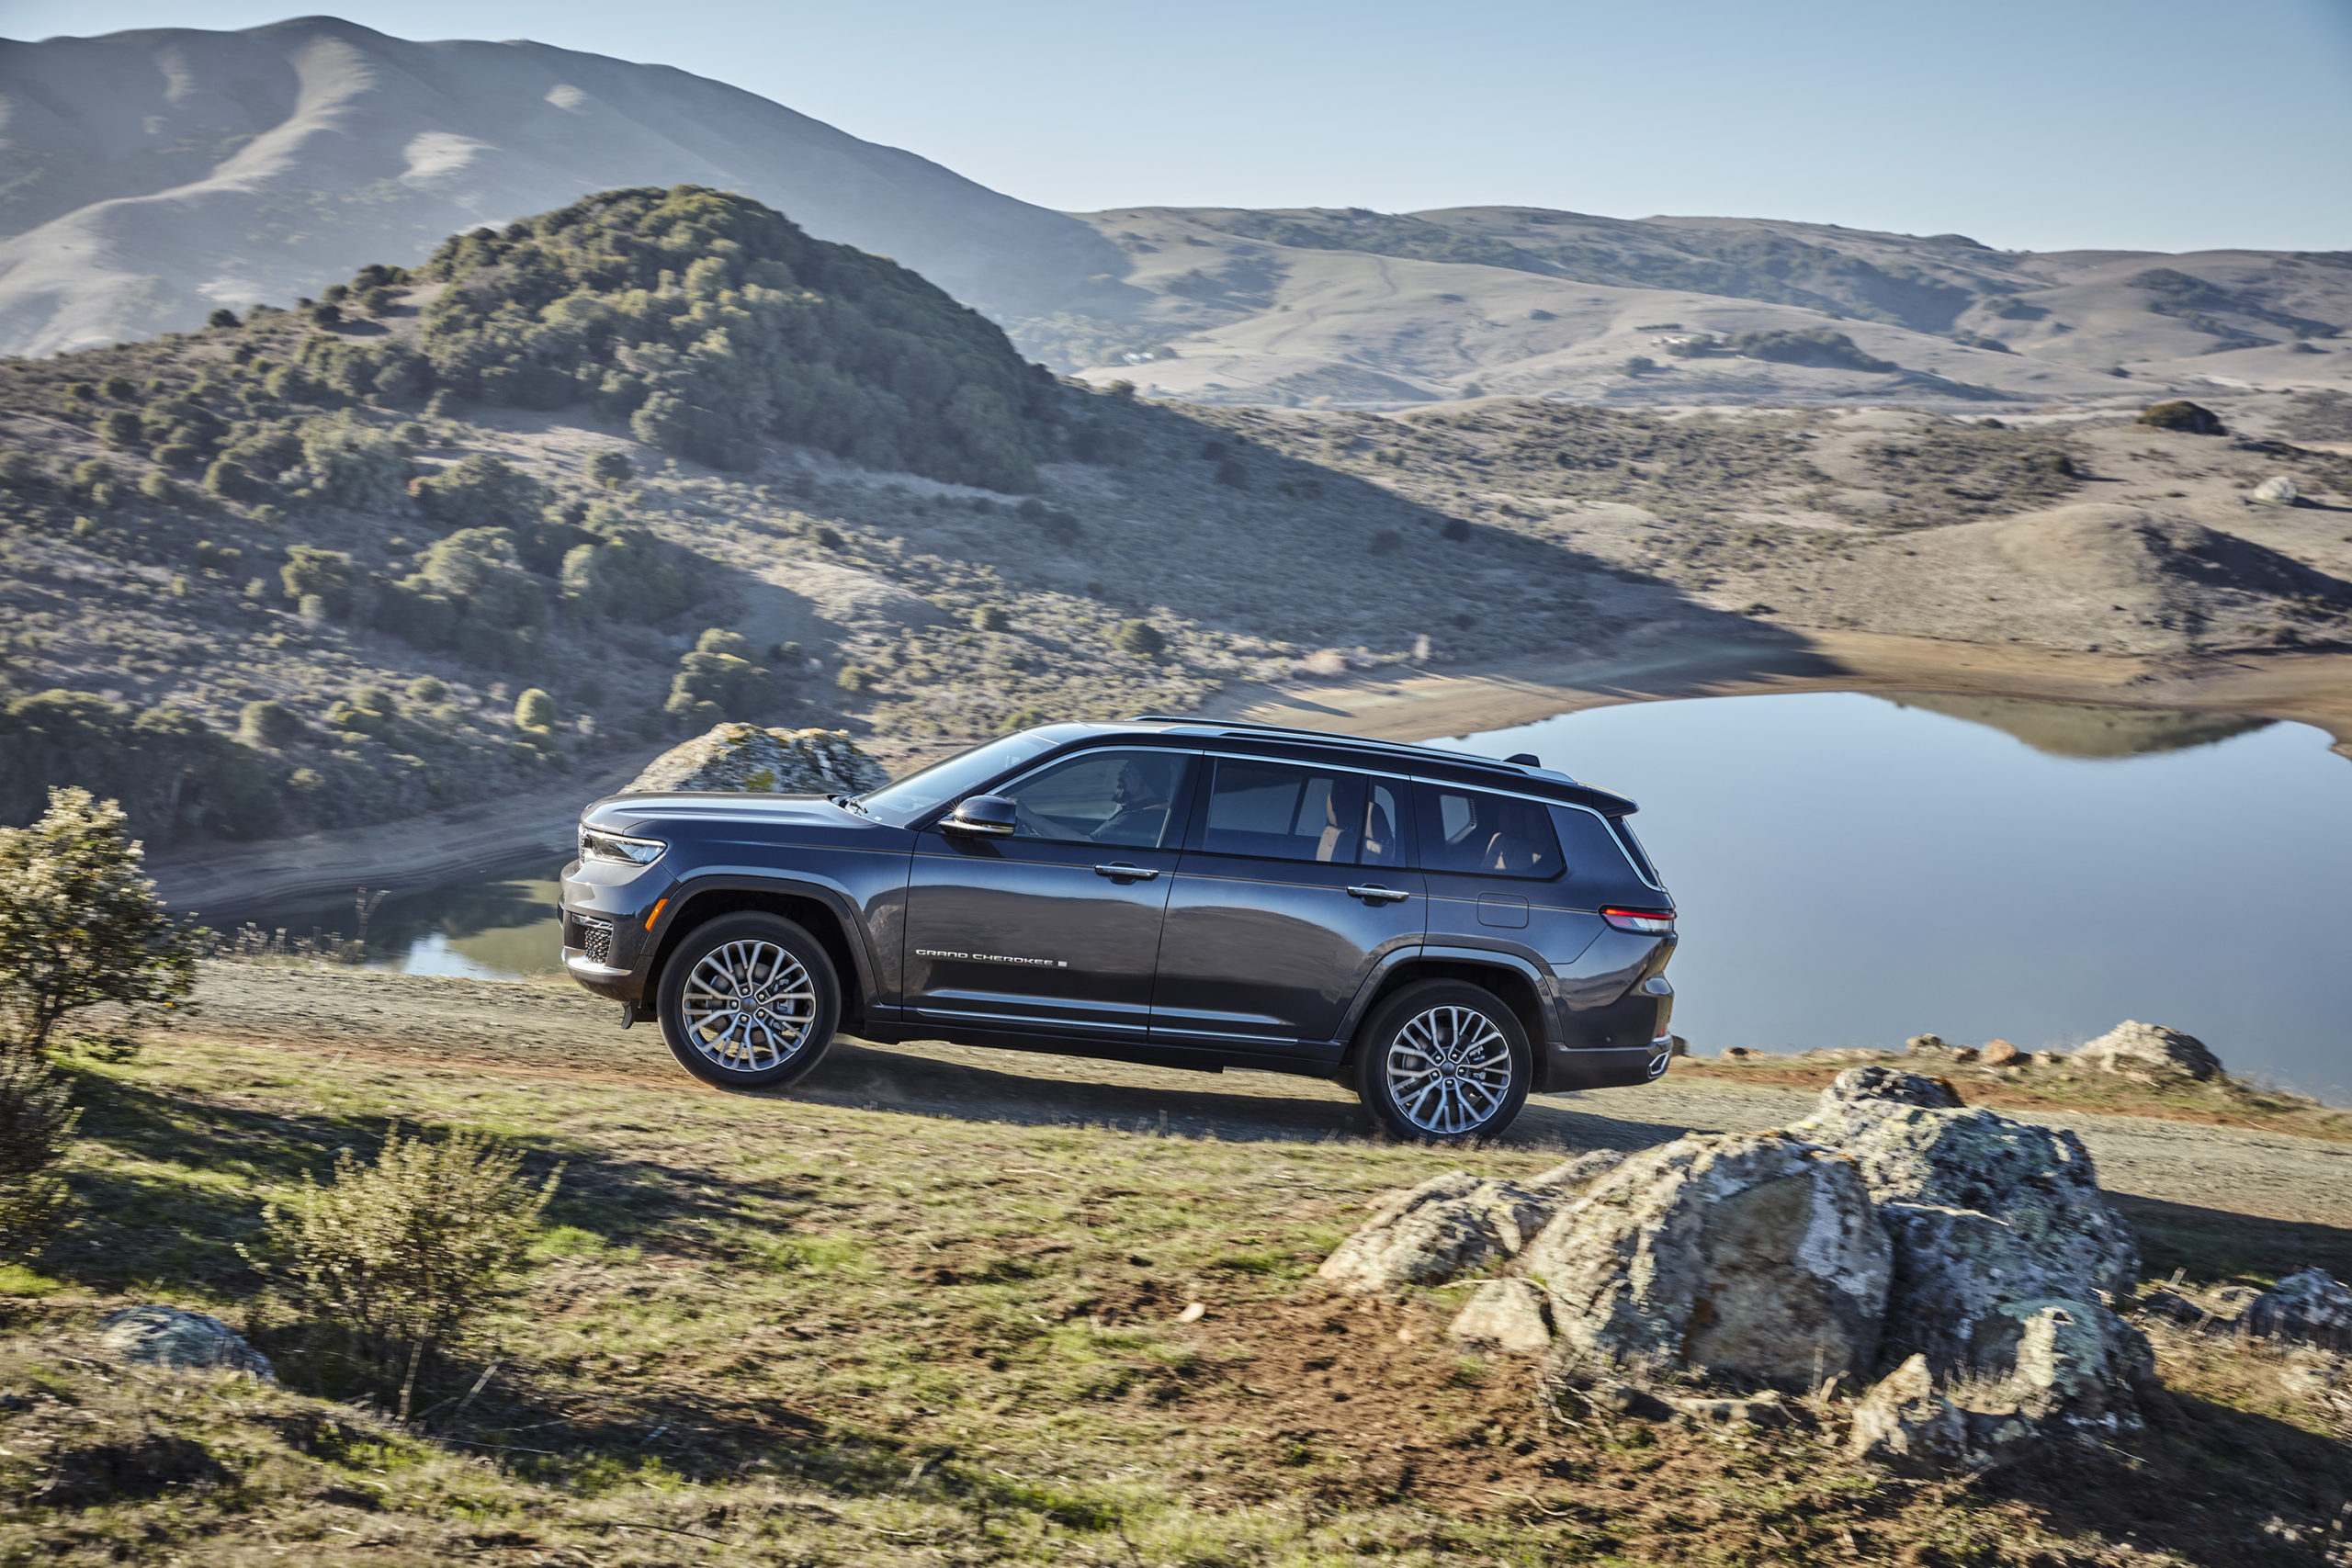 2021 Jeep Grand Cherokee L Review: All Dressed Up With Everywhere To Go